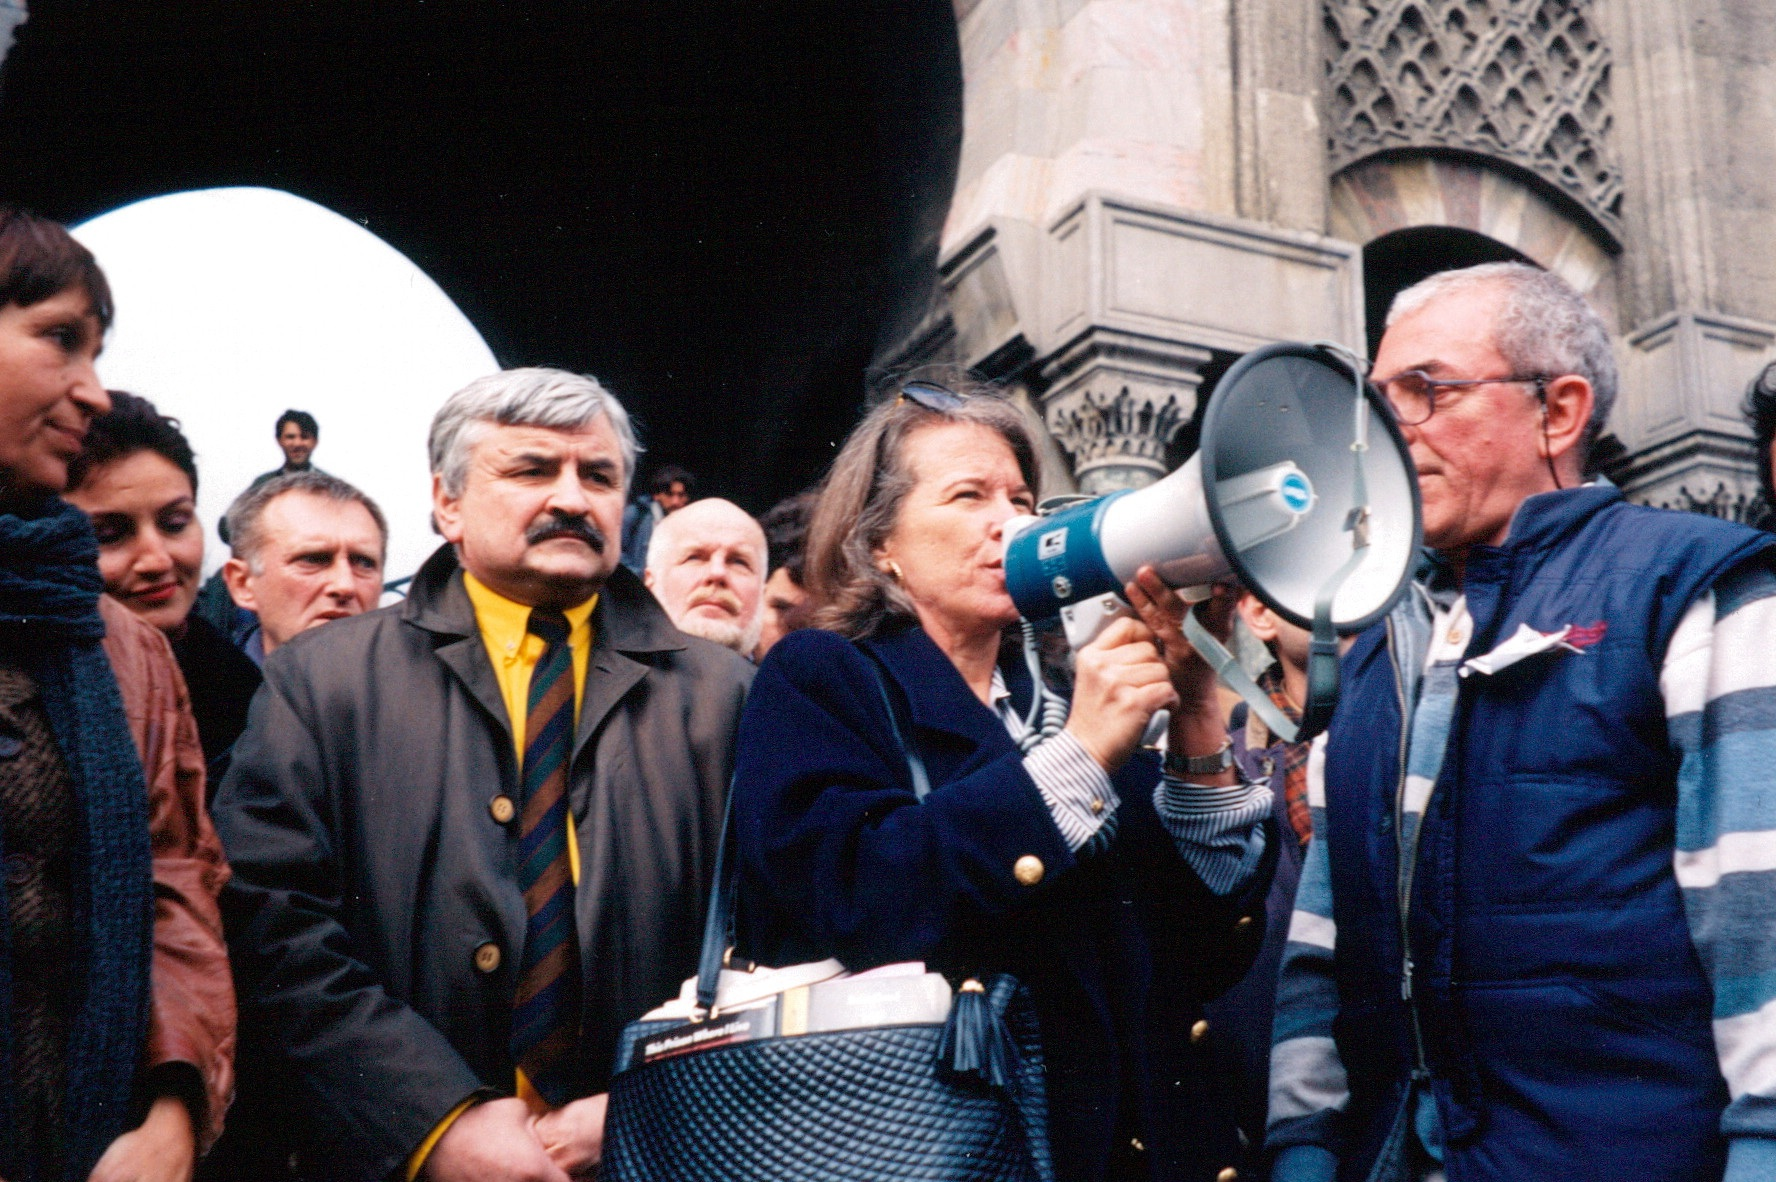 Joanne Leedom-Ackerman, then chair of the Writers in Prison Committee of PEN International at a protest rally held at Istanbul University on 11 March 1997, during the first Gathering in Istanbul for Freedom of Expression. To her left, Alexander Tkachenko, then general secretary of the Russian Centre (1994-2007). These PEN members were in Turkey for the first Gathering in Istanbul for Freedom of Expression, which took place on 10-12 March 1997, and at which a delegation from PEN International's Writers in Prison Committee were in attendance - headed by the committee's then chair Leedom-Ackerman.